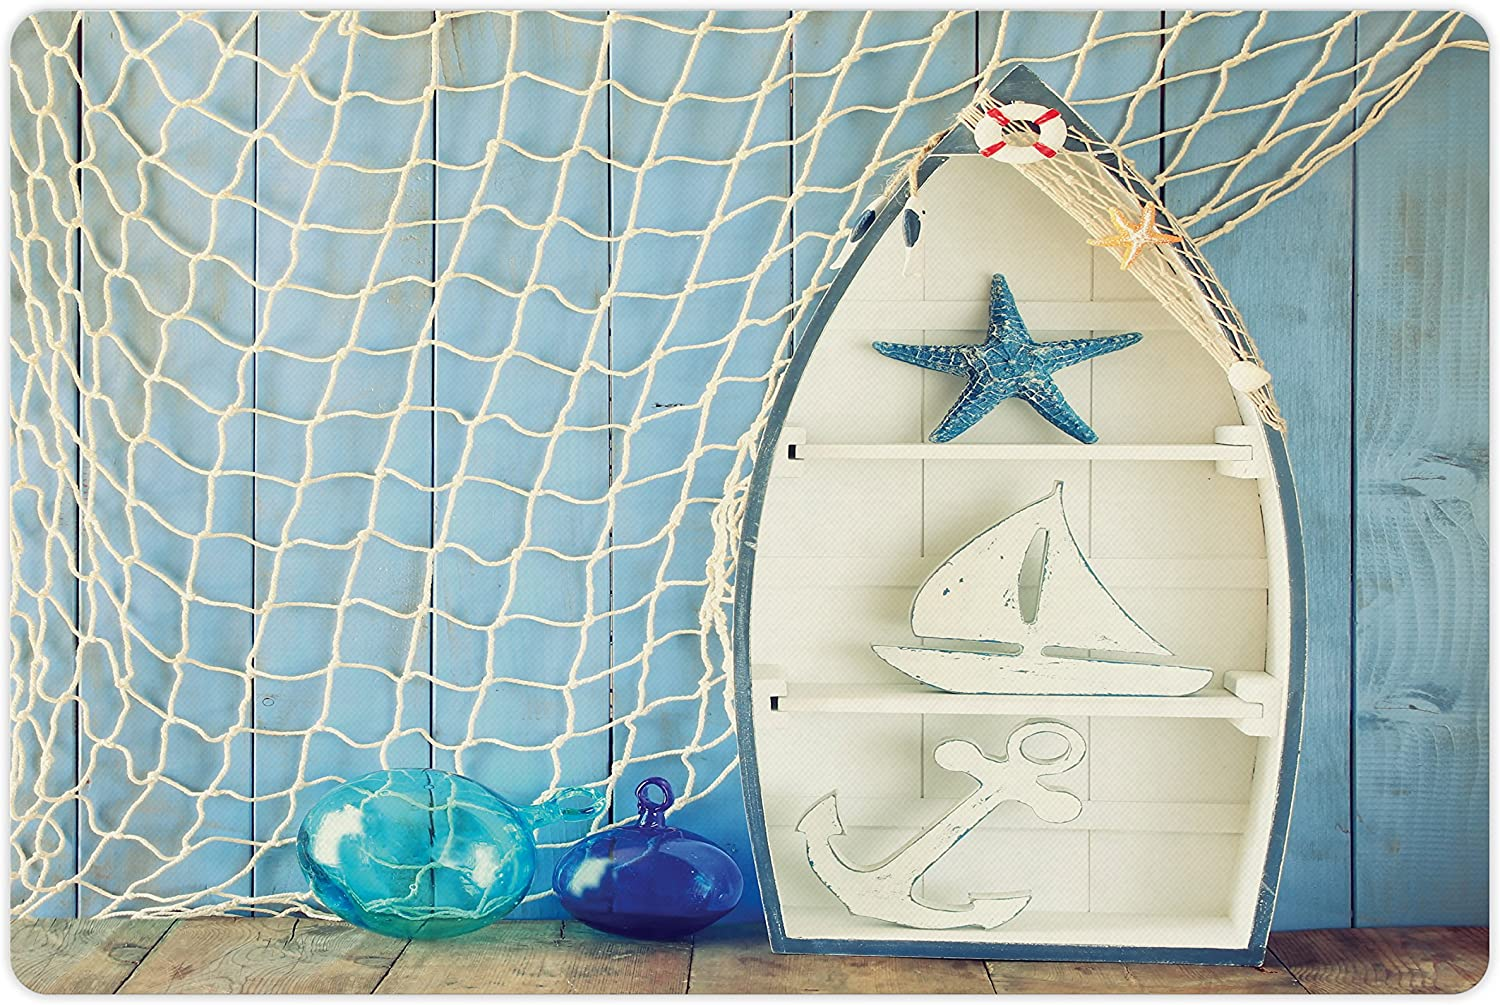 Ambesonne Nautical Pet Mat for Food and Water, Sea Objects on Wooden Backdrop with Vintage Boat Starfish Shell Fishing Net Photo, Non-Slip Rubber Mat for Dogs and Cats, 18